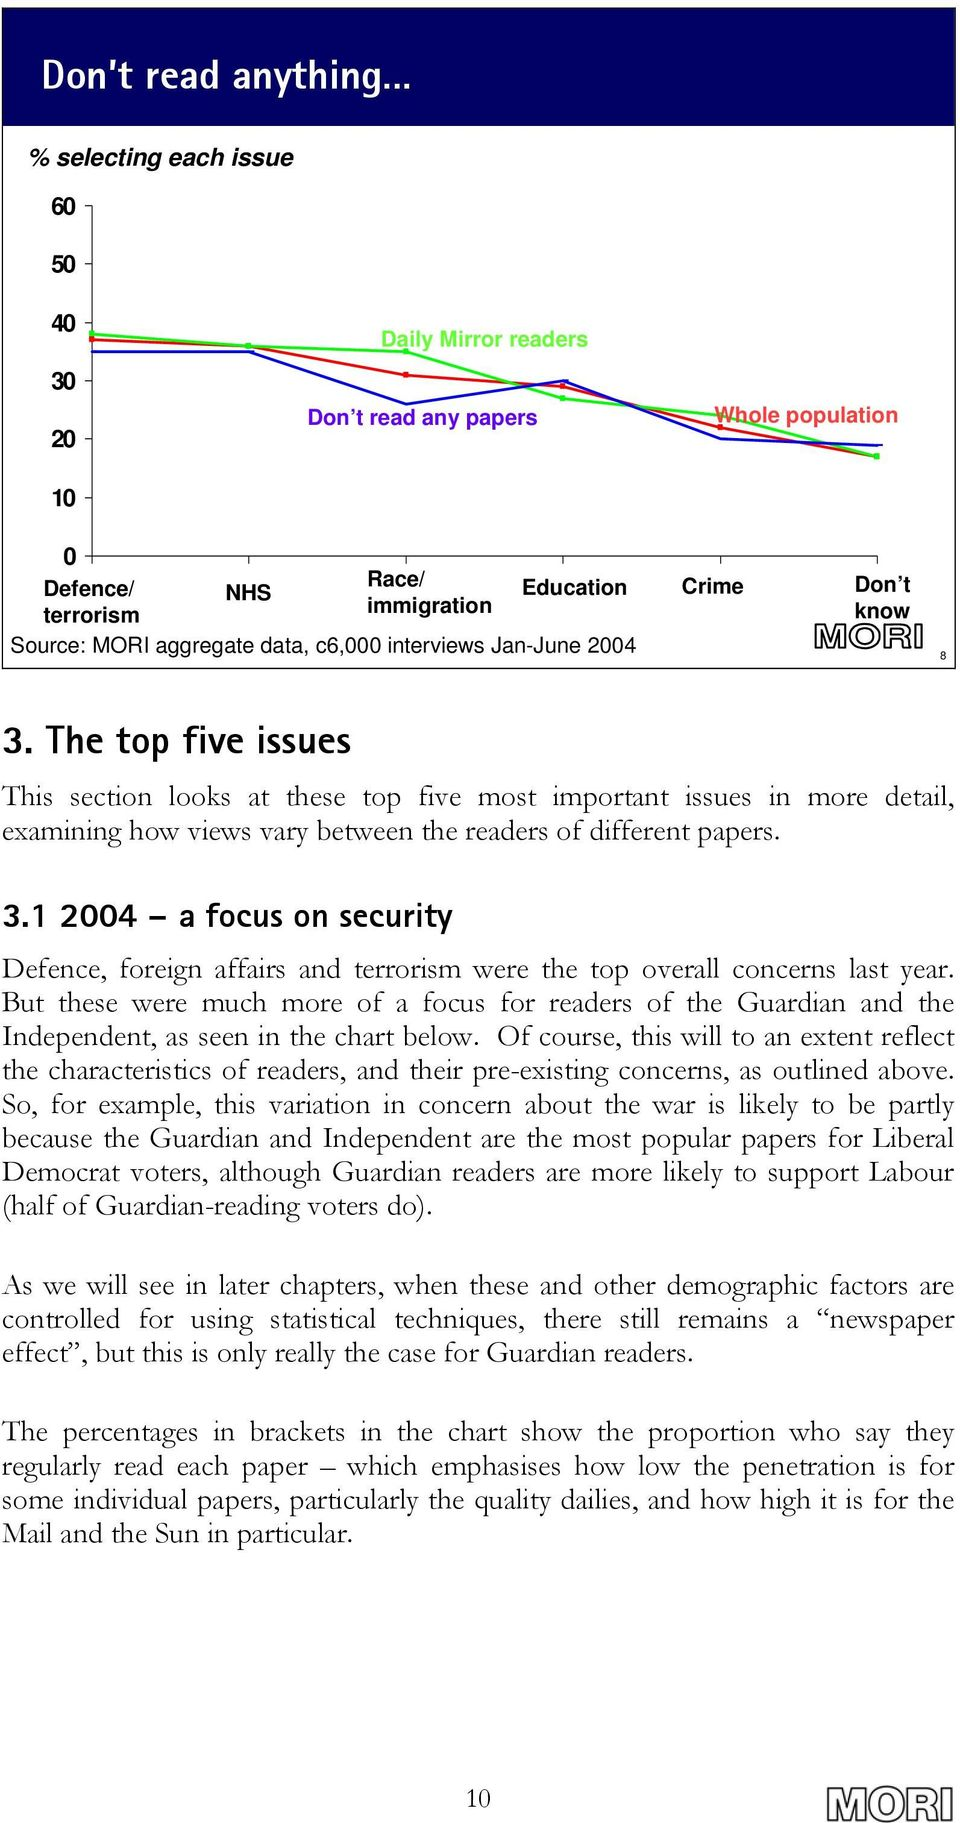 The top five issues This section looks at these top five most important issues in more detail, examining how views vary between the readers of different papers. 3.